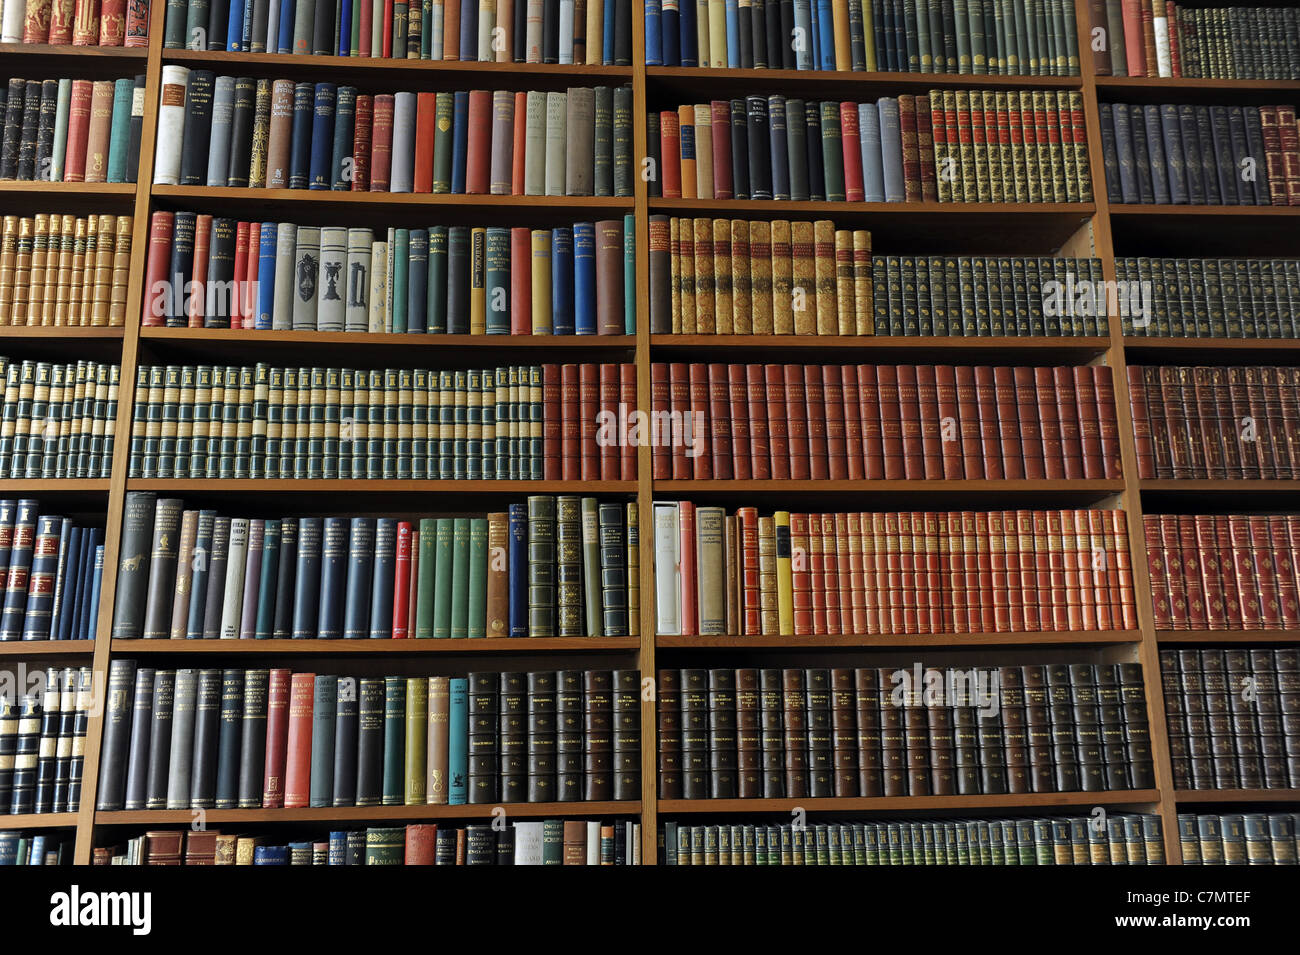 Library books on shelves uk - Stock Image